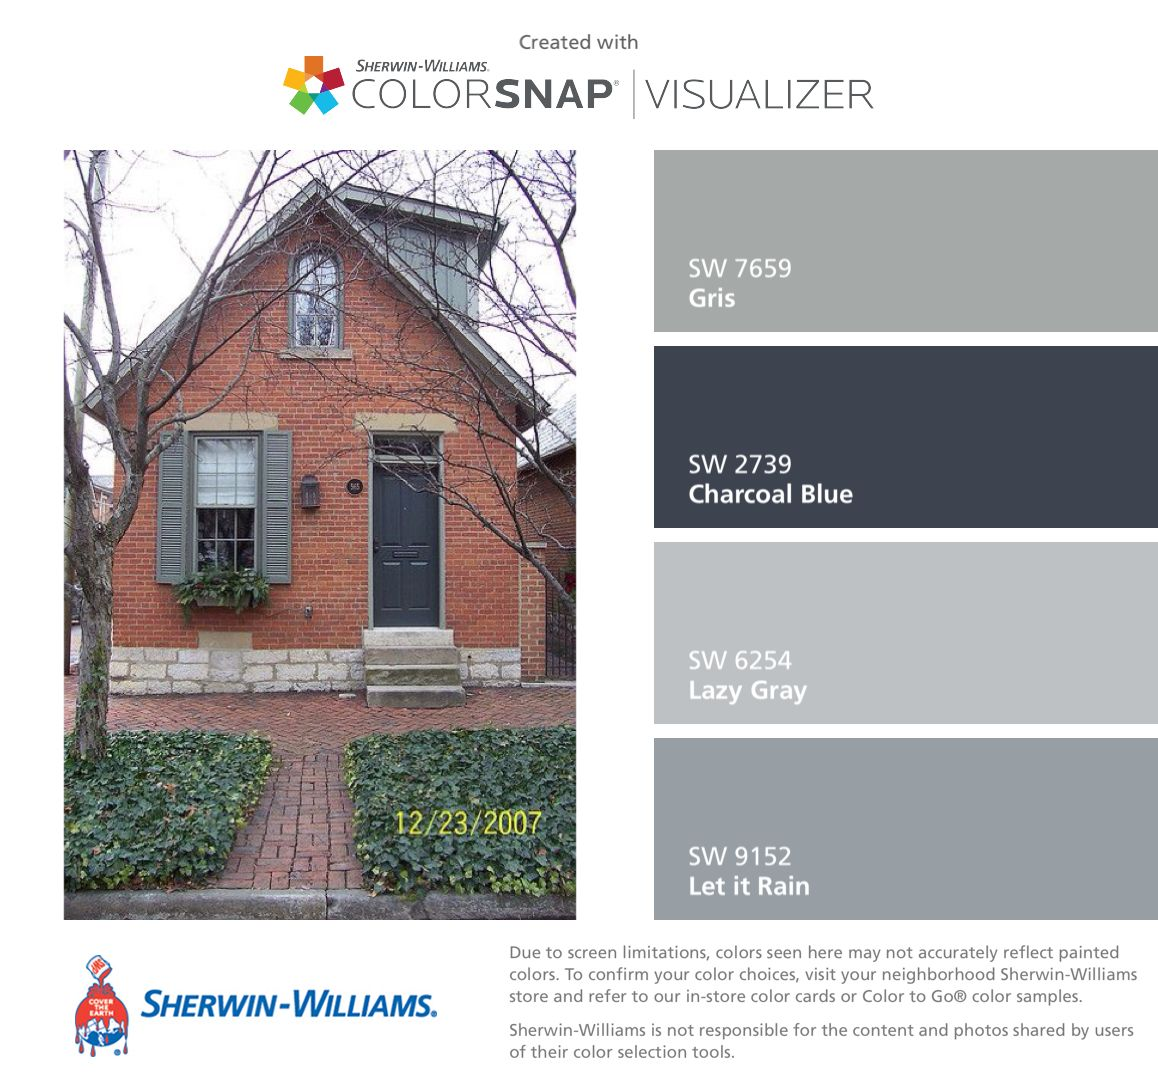 I found these colors with colorsnap visualizer for iphone by sherwin williams gris sw 7659 for Sherwin williams exterior paint color visualizer